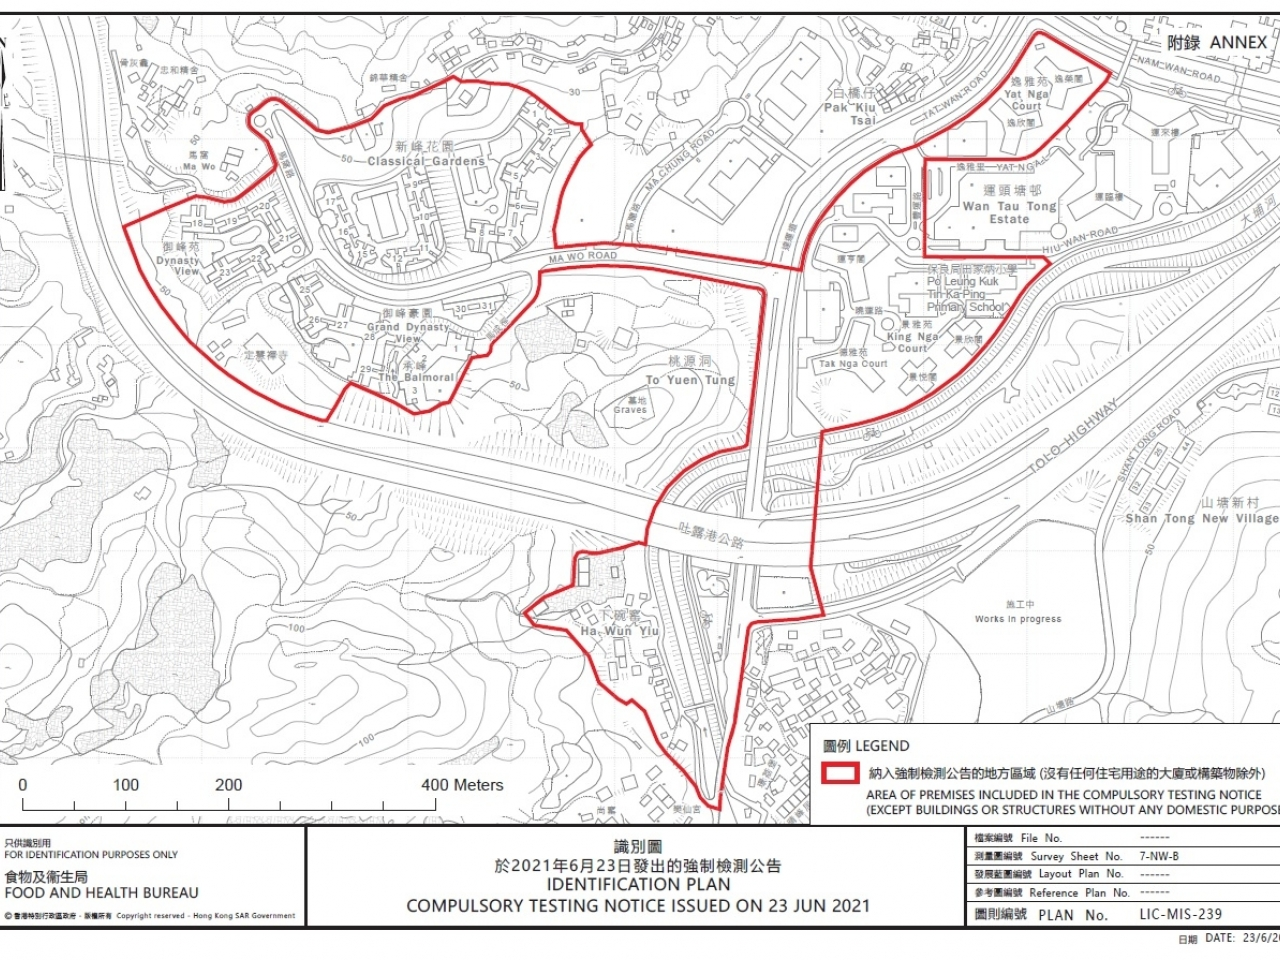 The compulsory testing order covers a large area in Tai Po.